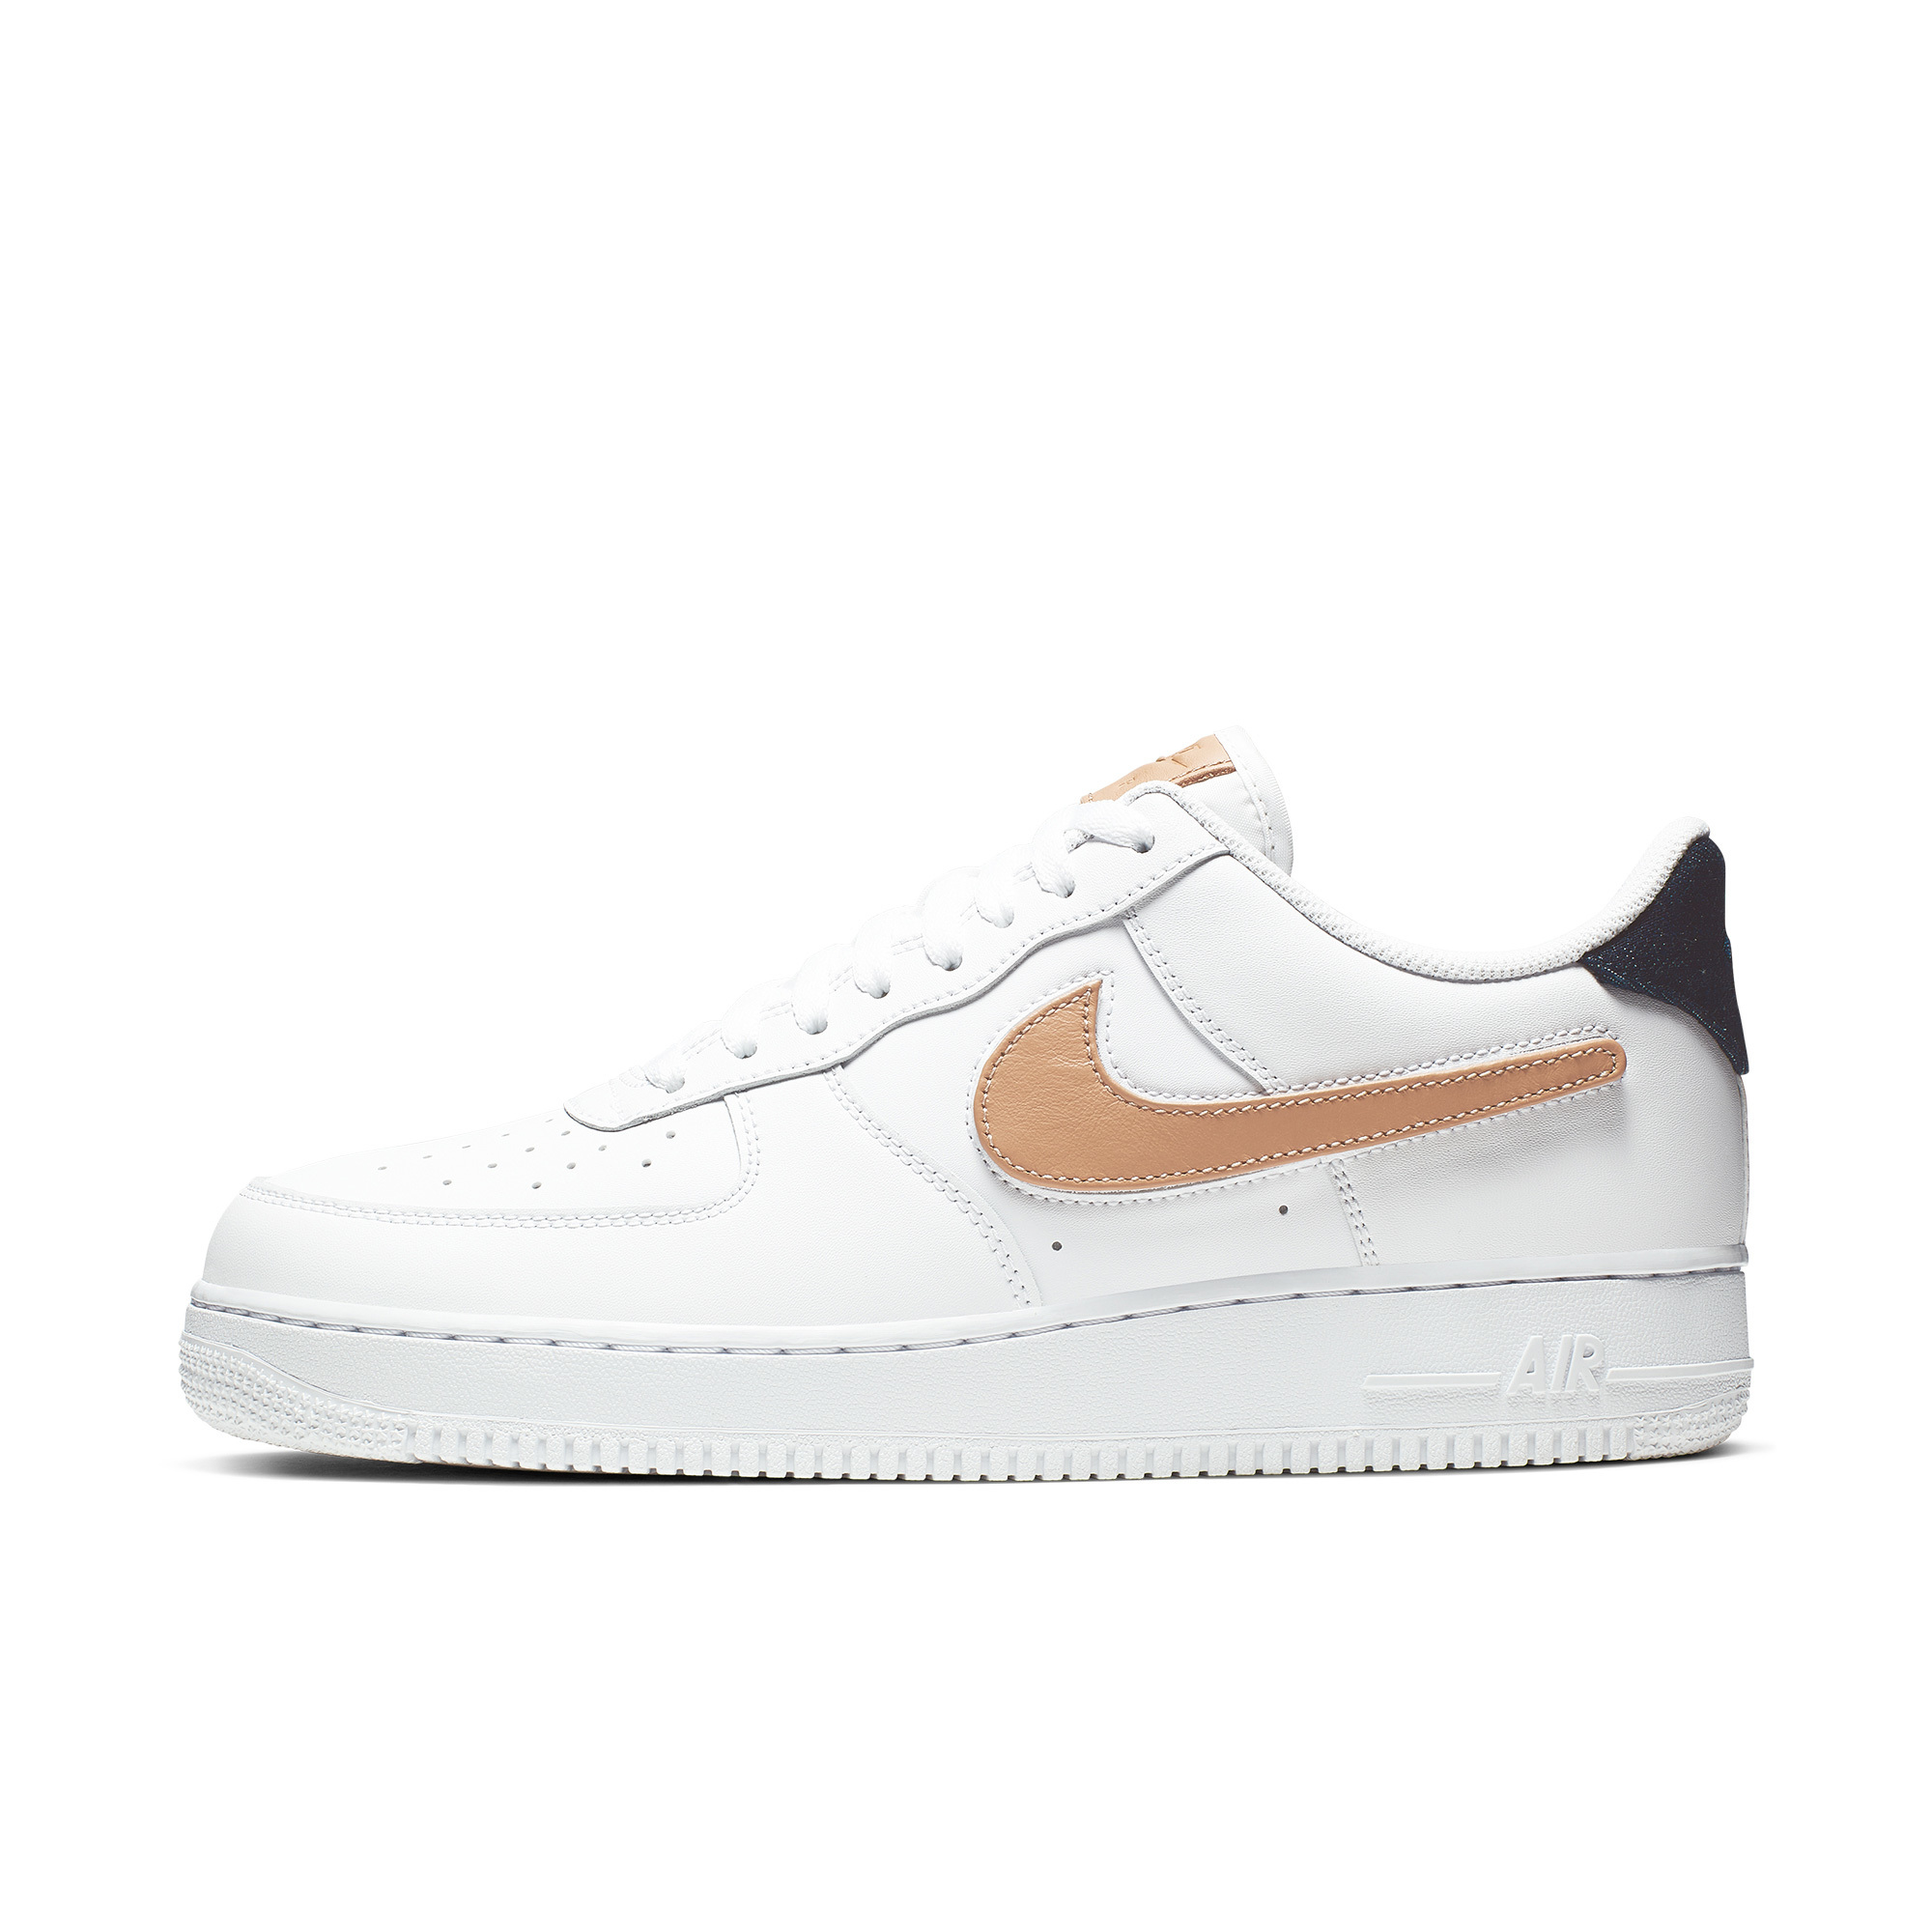 Nike Air Force 1 '07 LV8 3 Skateboarding Men Shoes AF1 Comfortable Light Outdoor Sports Sneakers CT2253